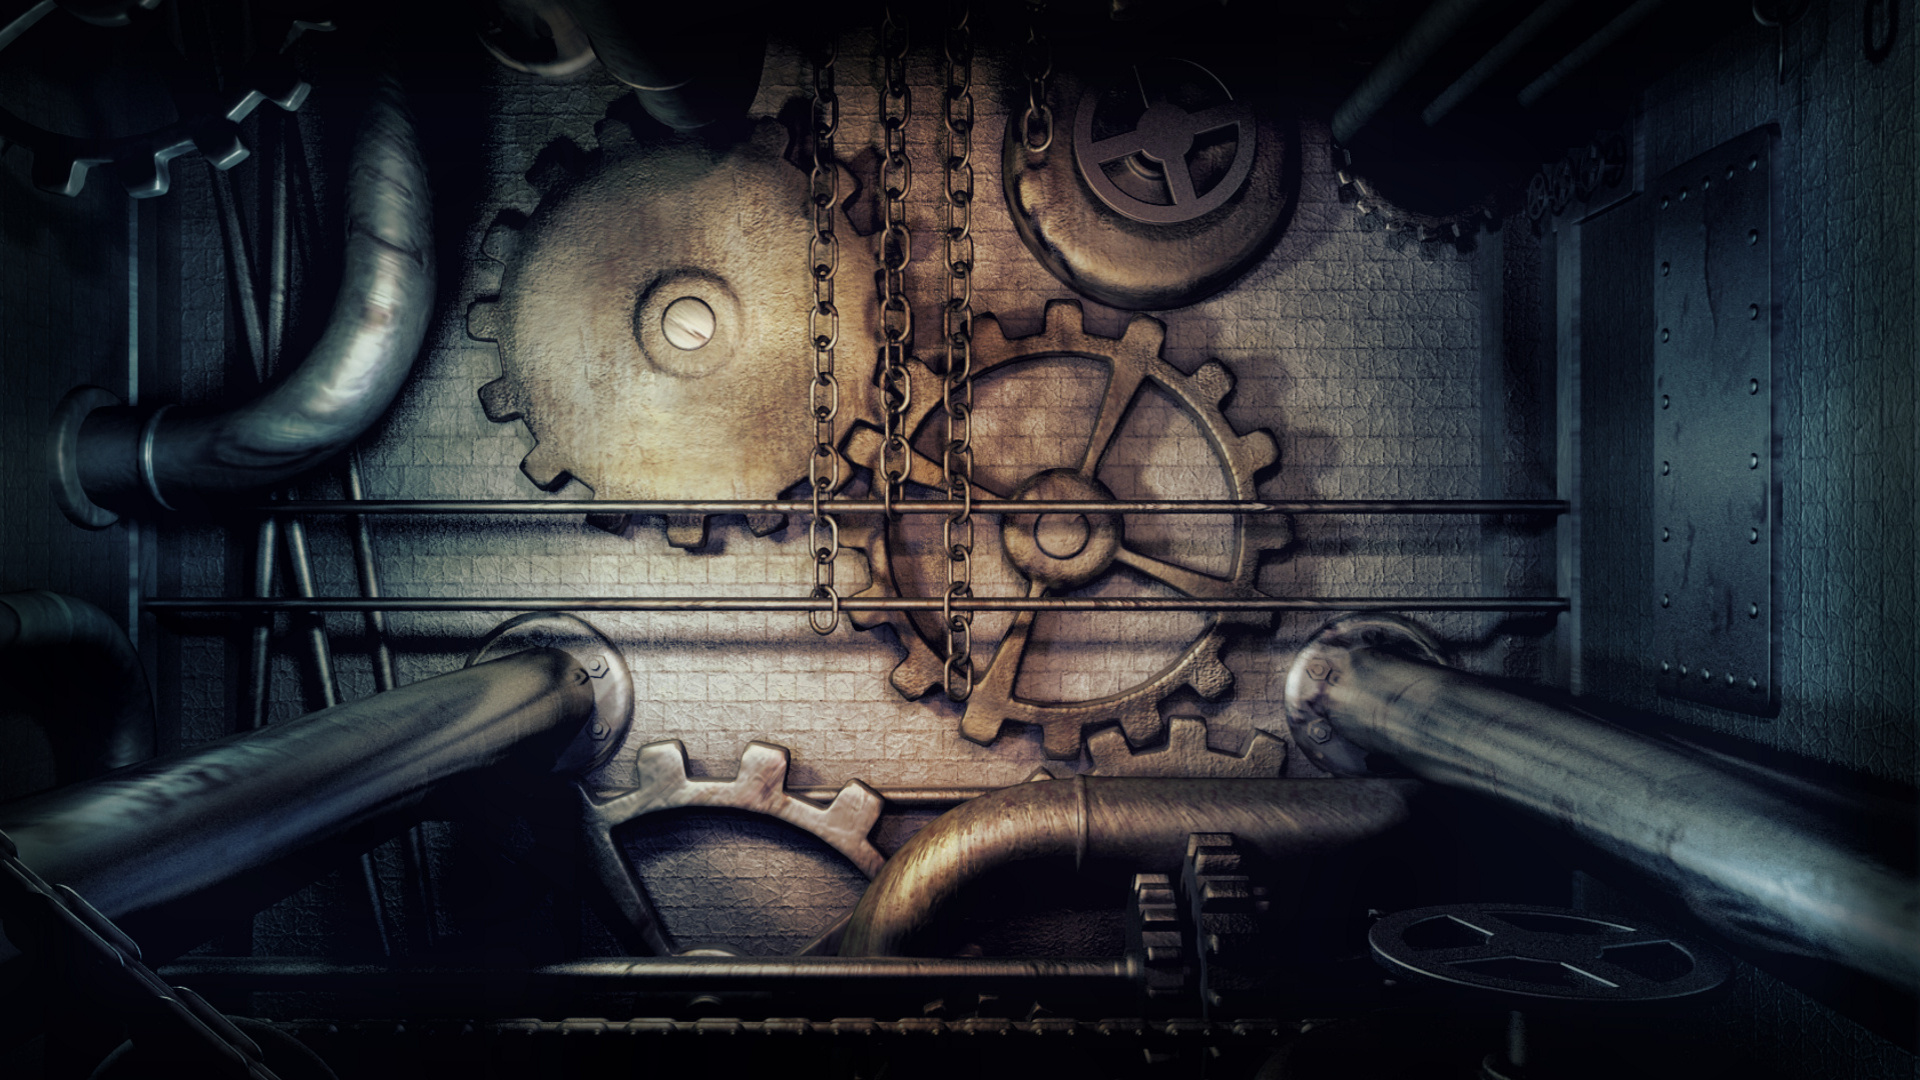 Steampunk Gears Iphone Wallpaper Steampunk gears pipes chains 1920x1080